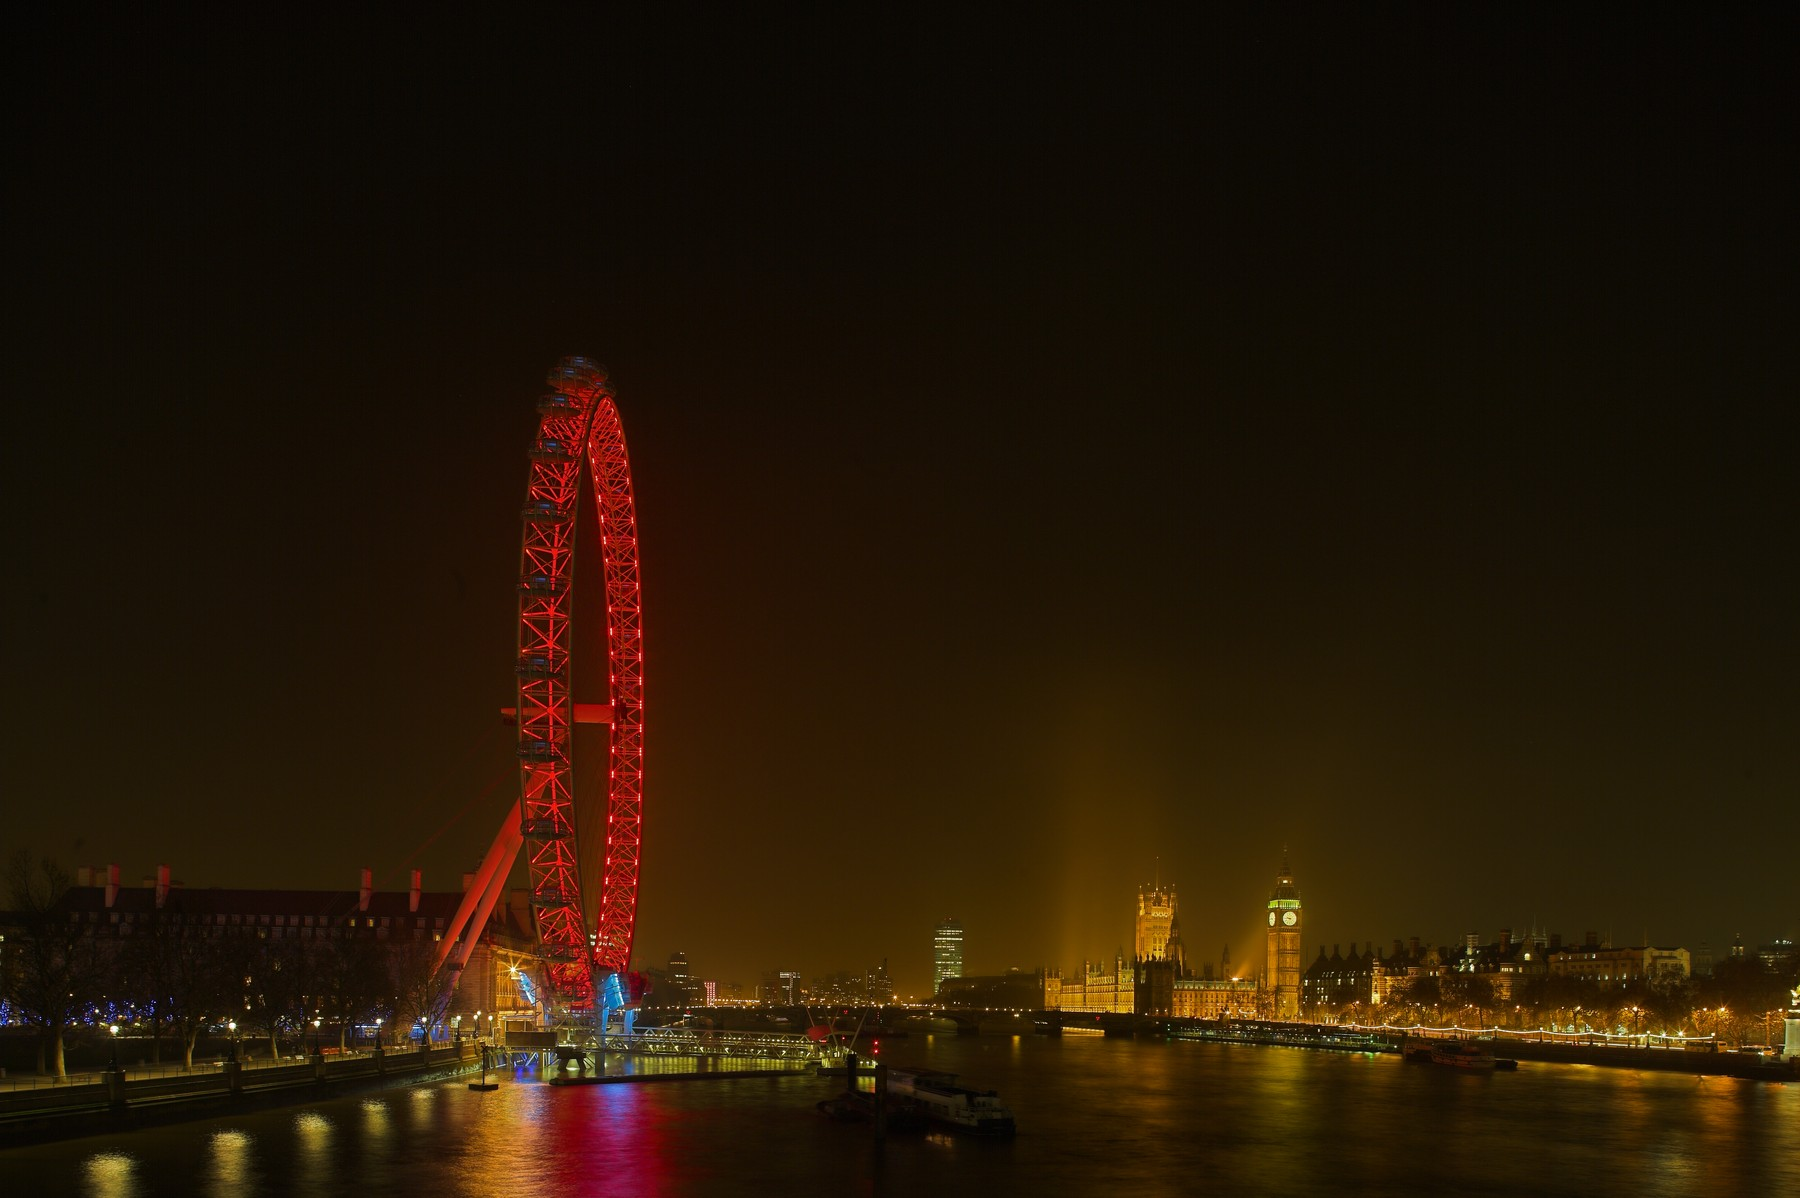 London Eye - Architectural Lighting for Visitor Attractions